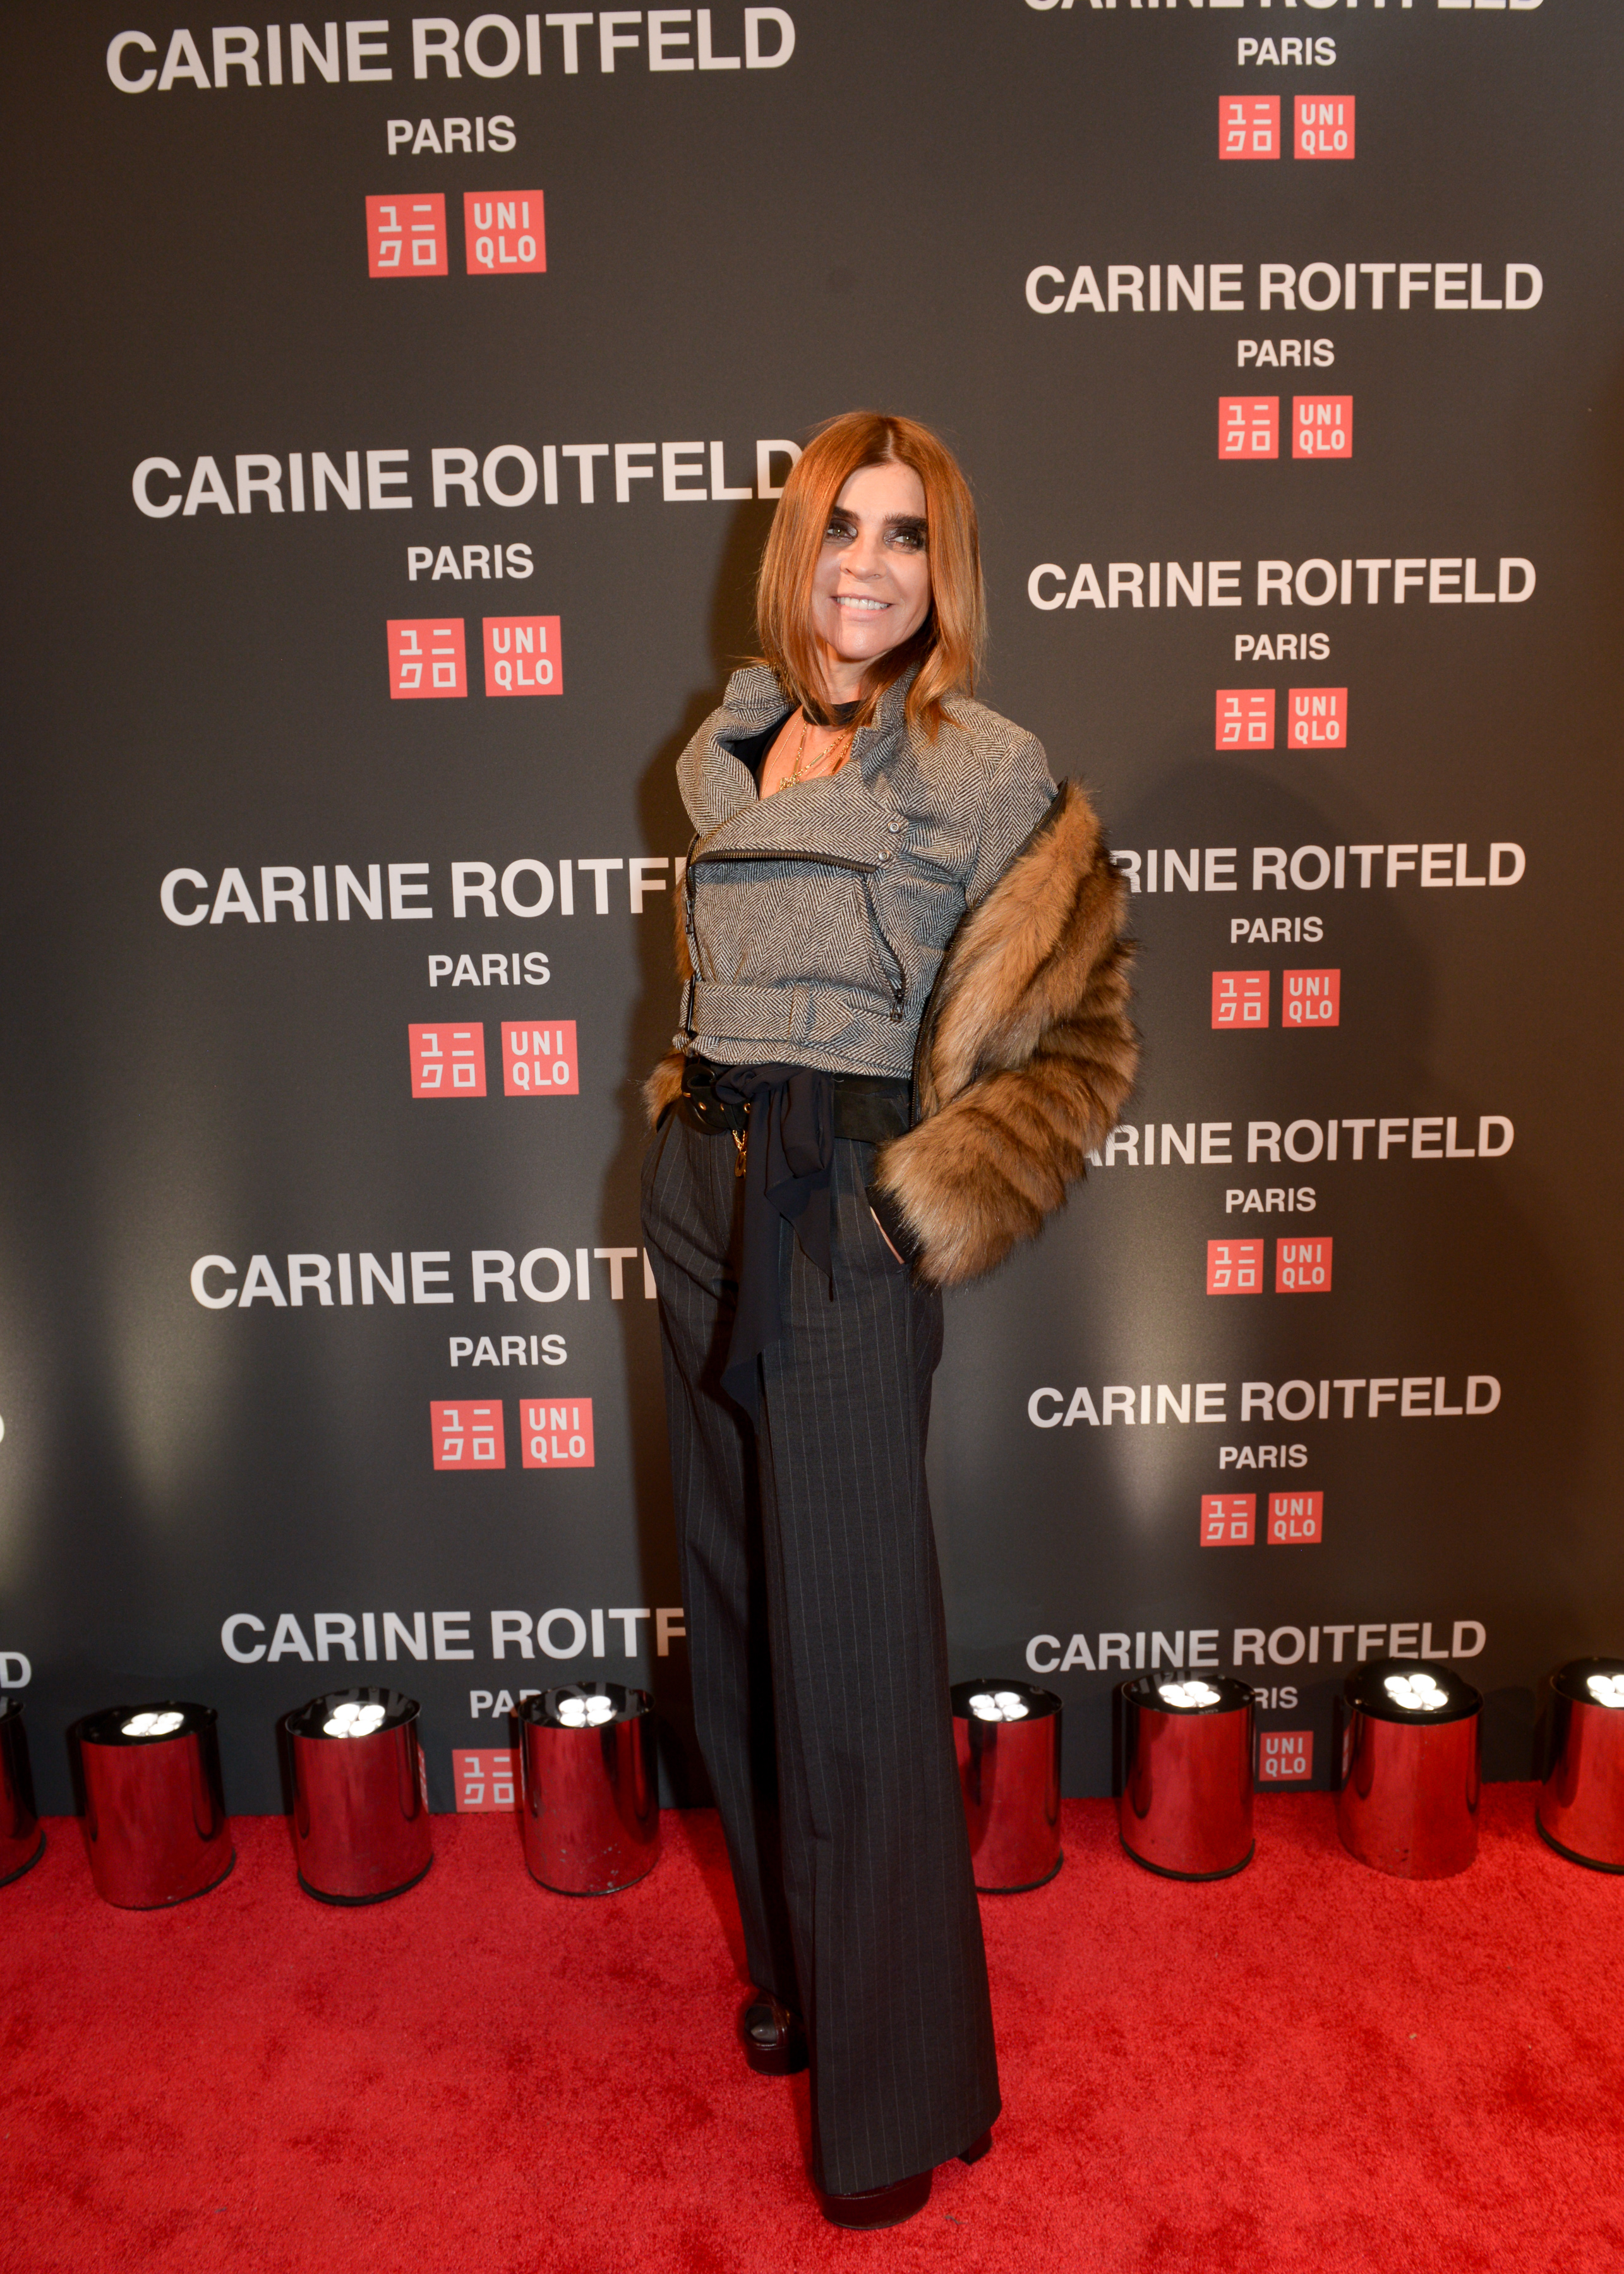 Exclusive: Carine Roitfeld On Her New Collection for Uniqlo